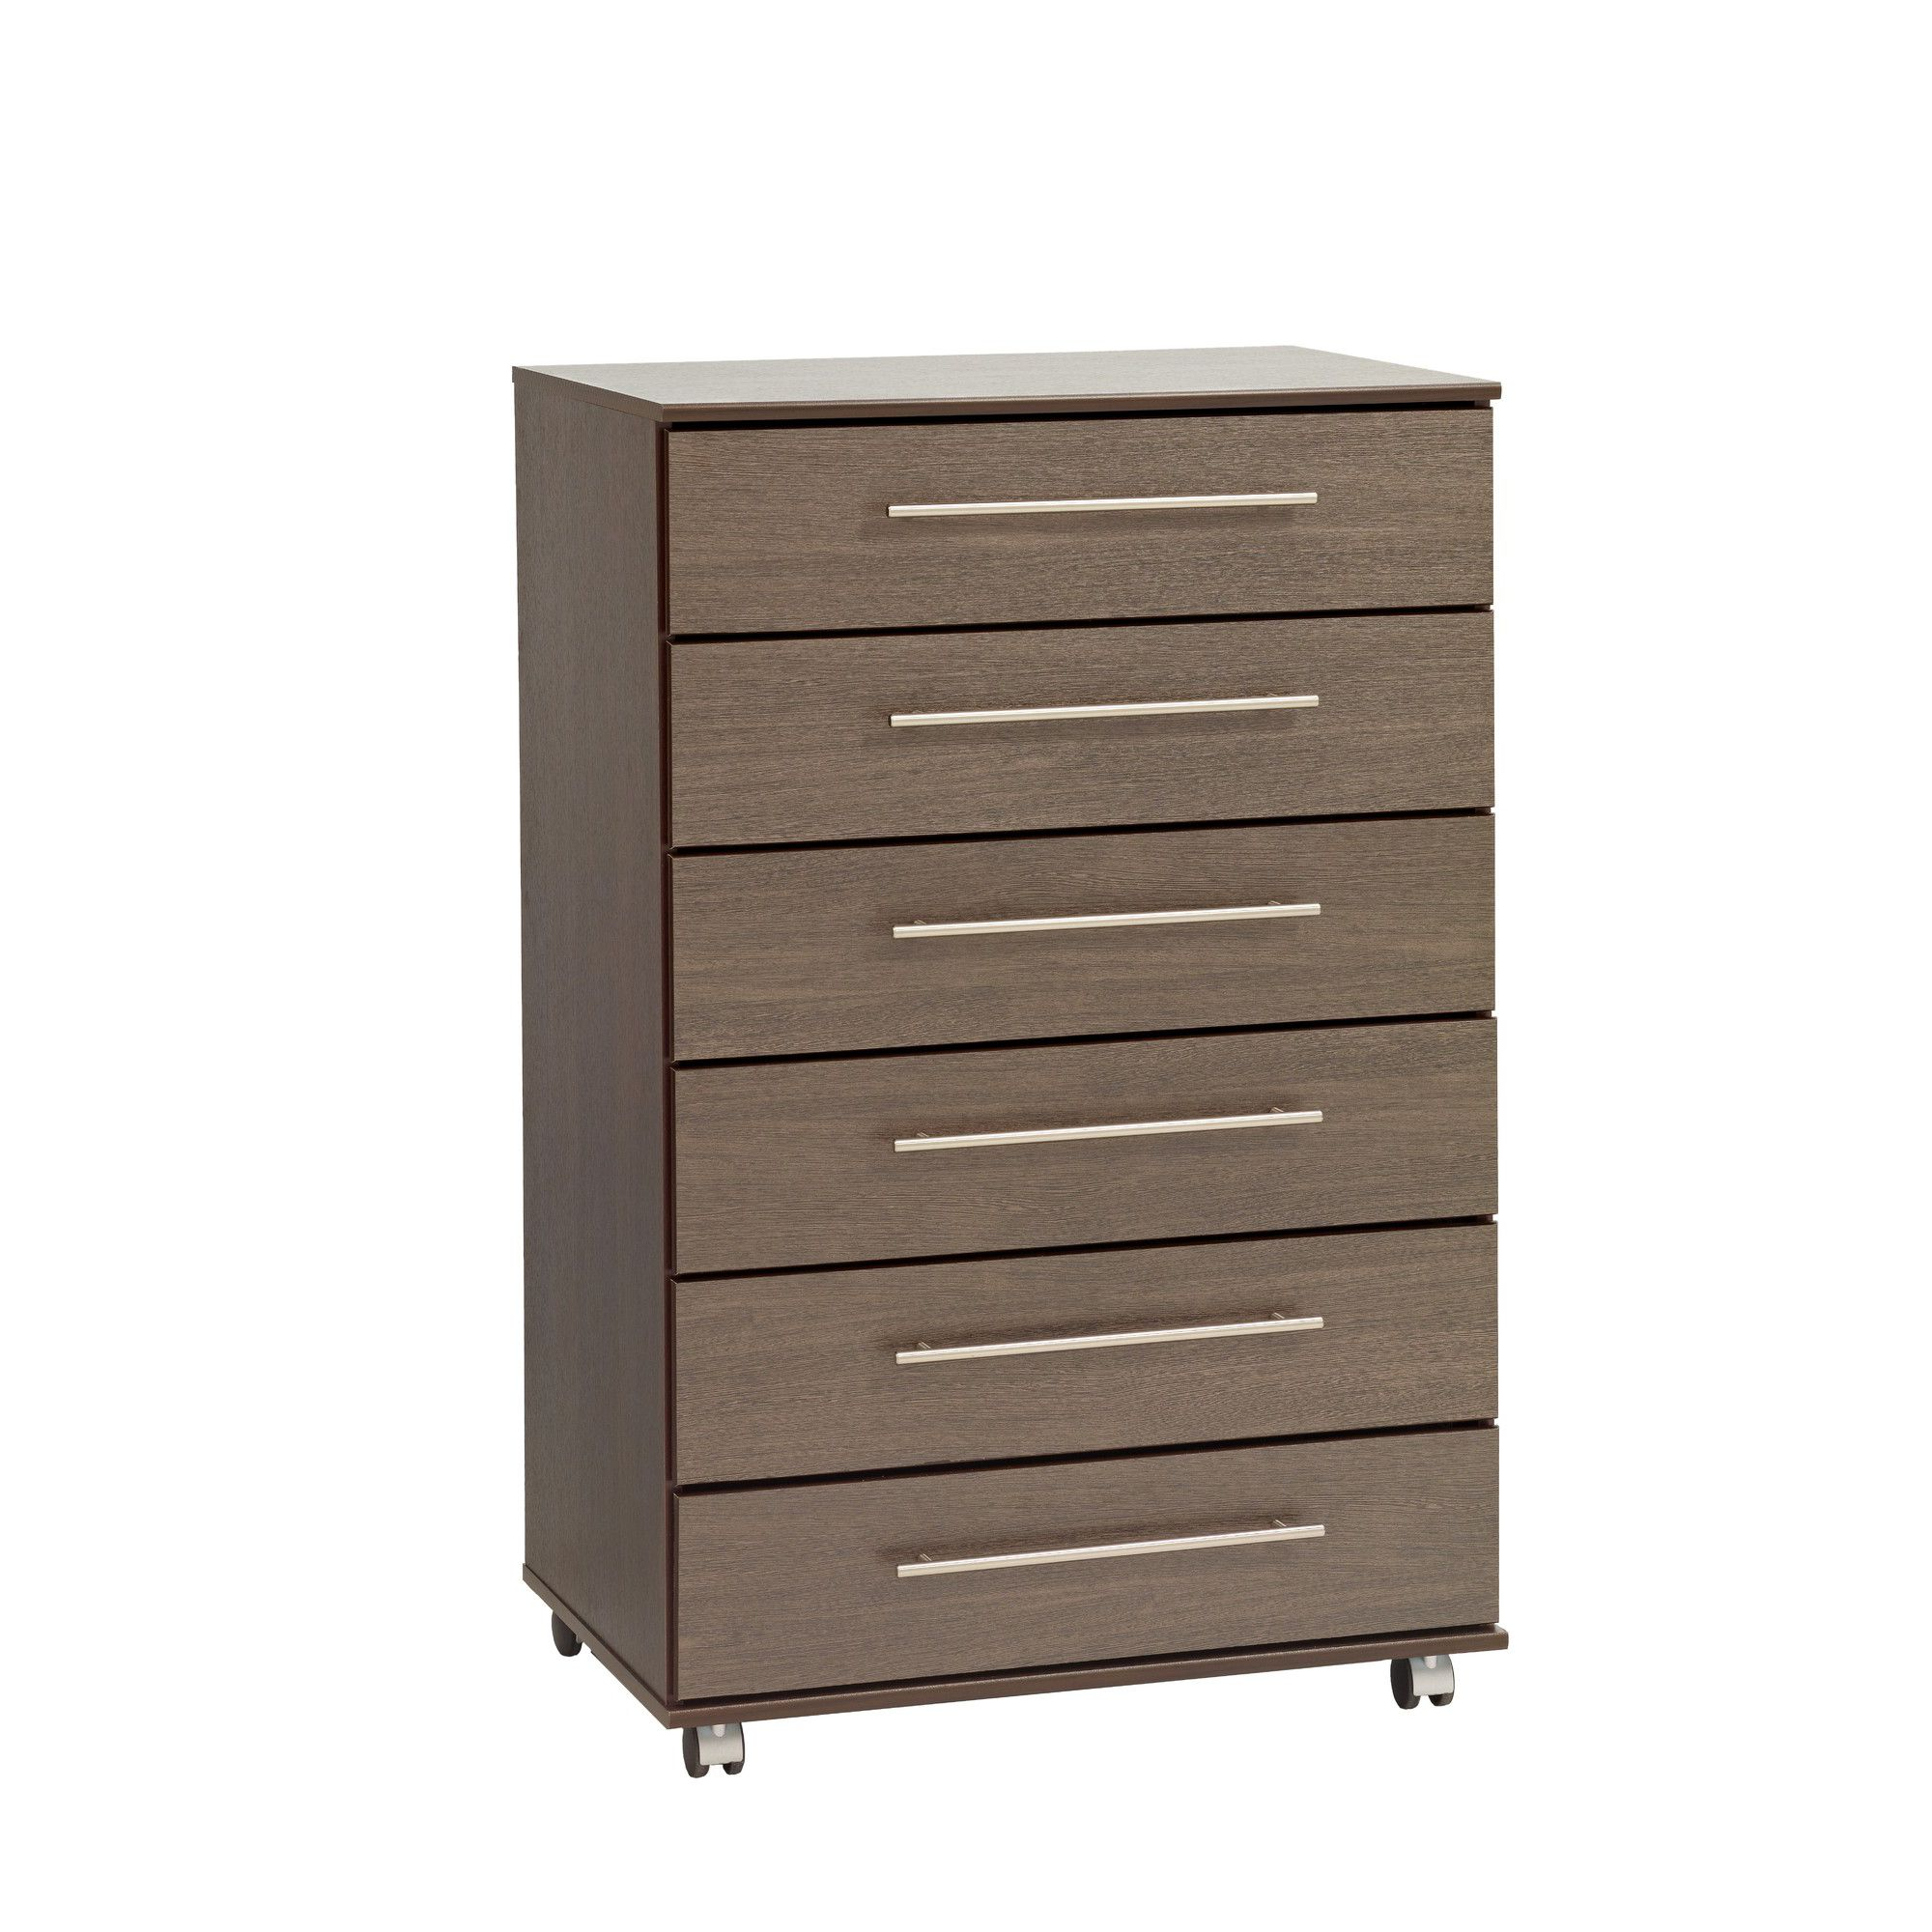 Ideal Furniture New York 6 Drawer chest - White at Tesco Direct